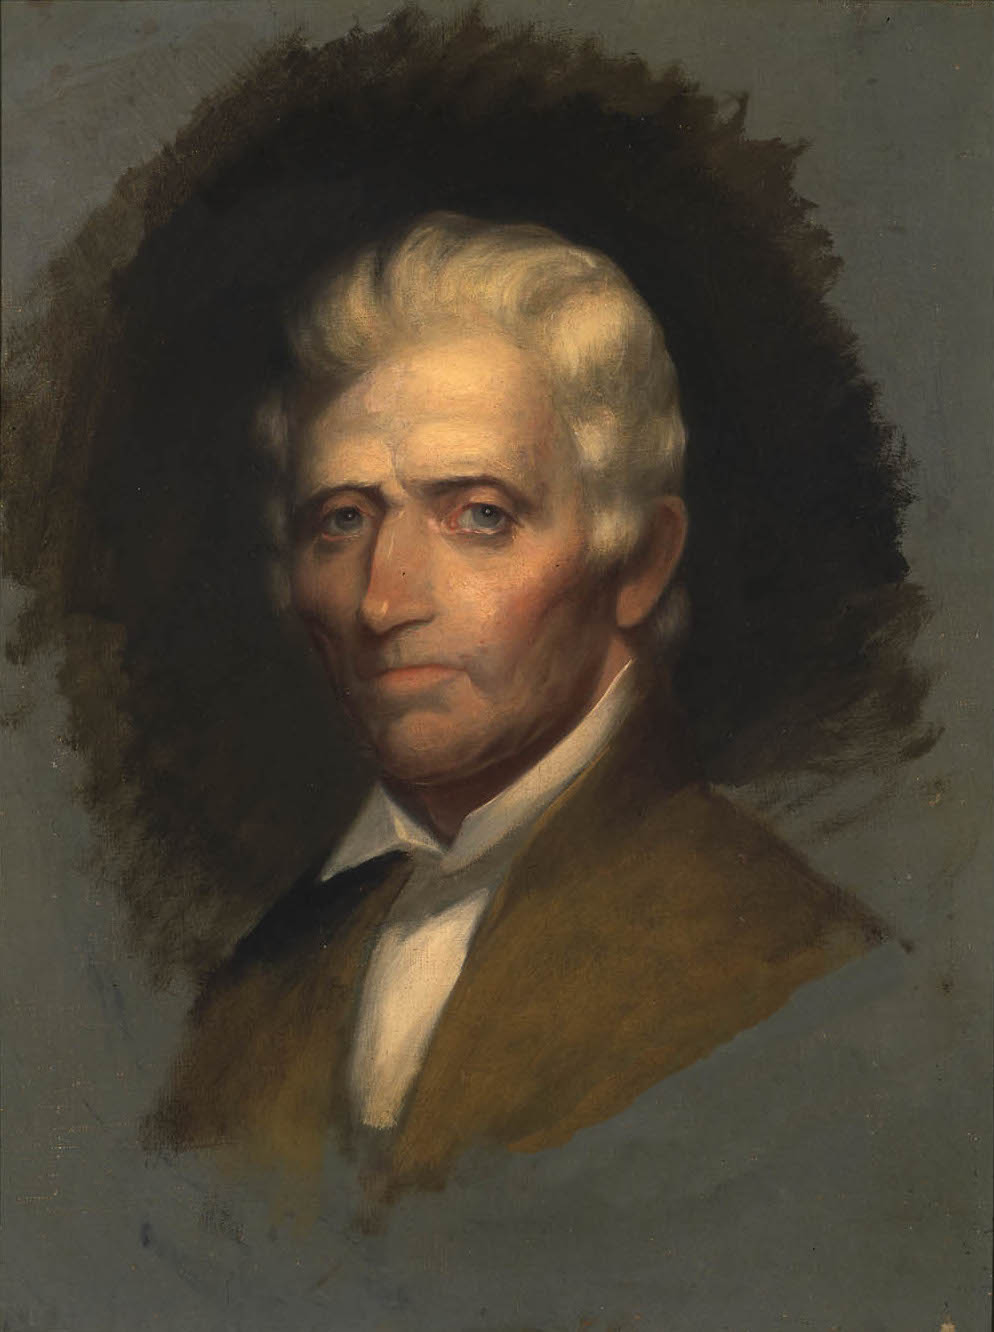 http://upload.wikimedia.org/wikipedia/commons/7/79/Unfinished_portrait_of_Daniel_Boone_by_Chester_Harding_1820.jpg